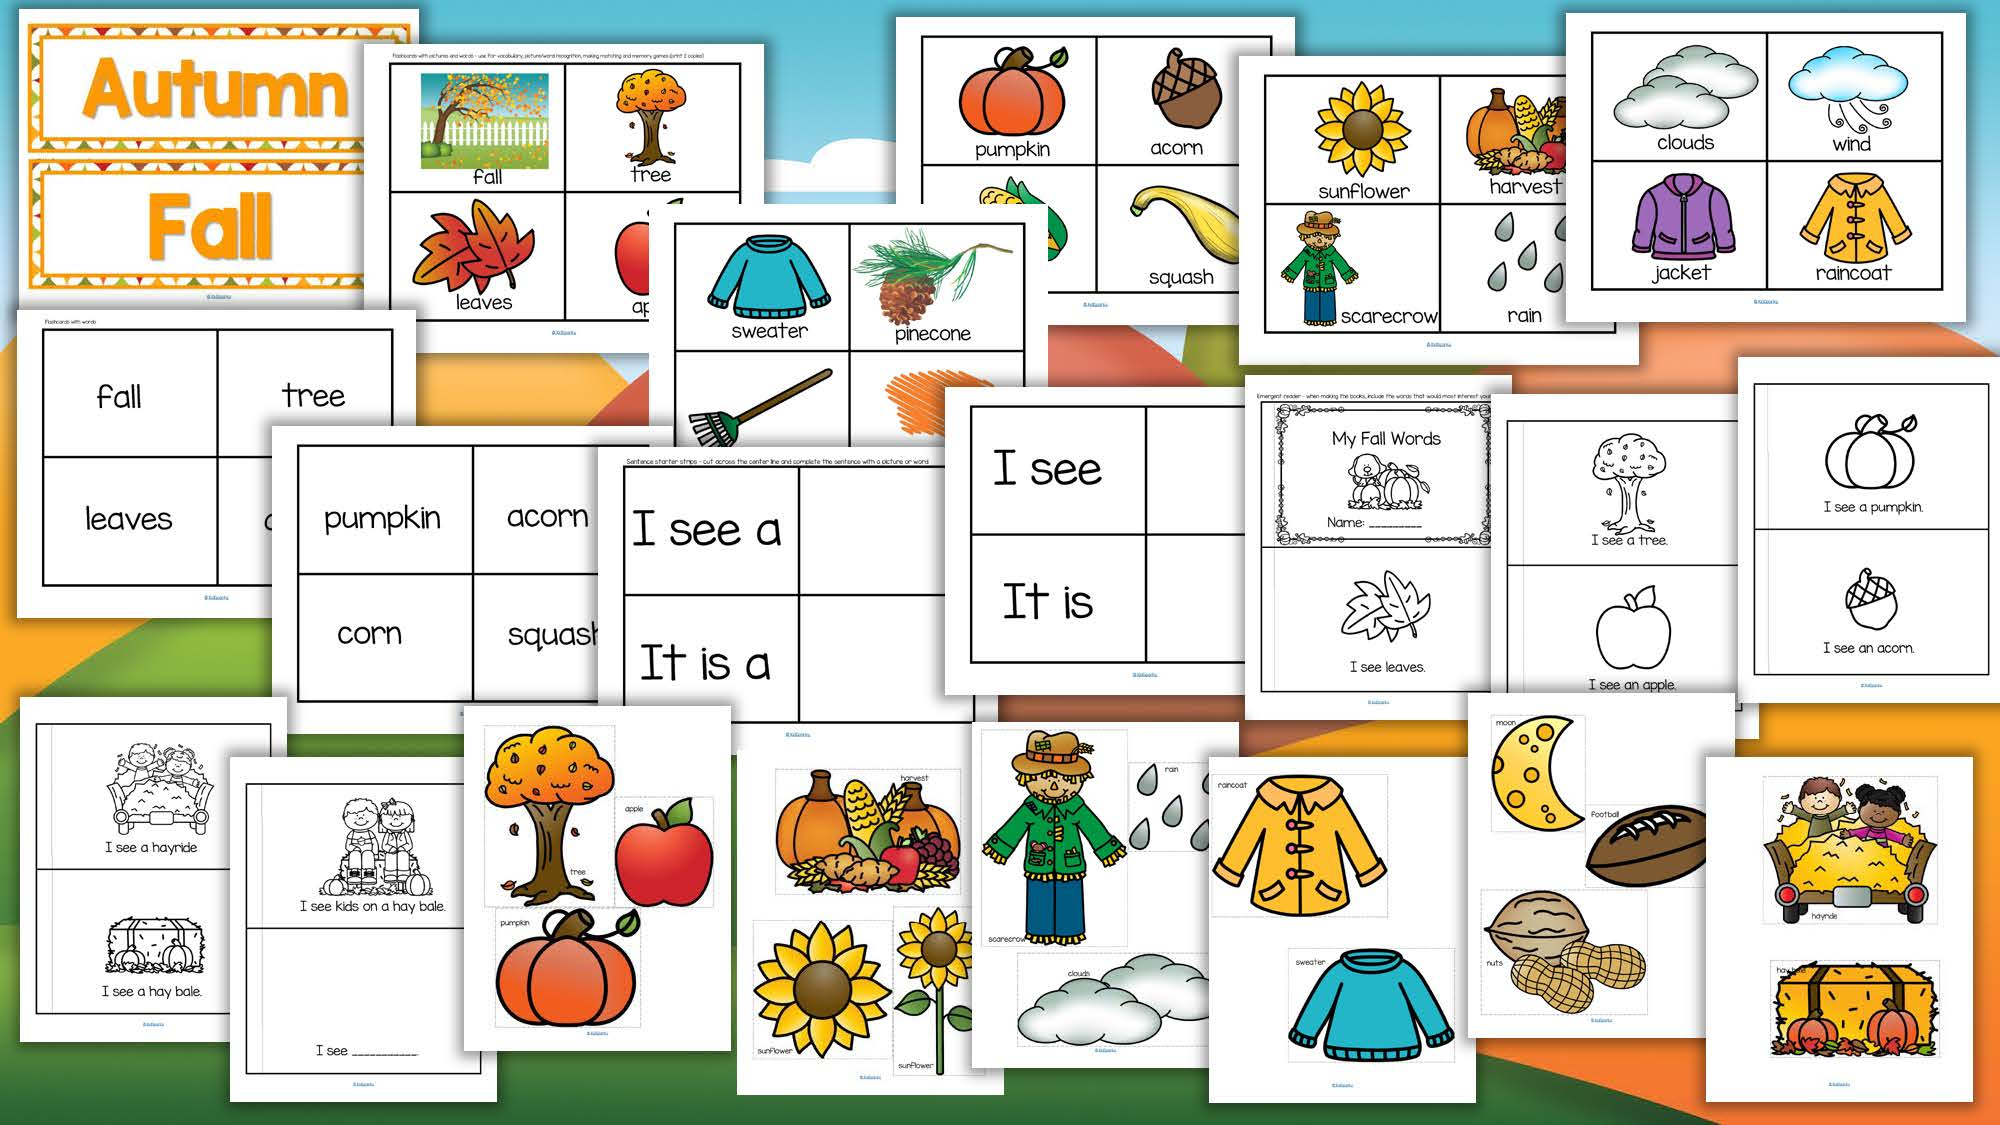 Fall Autumn Vocabulary Center Amp Group Activities For Preschool Amp Kindergarten